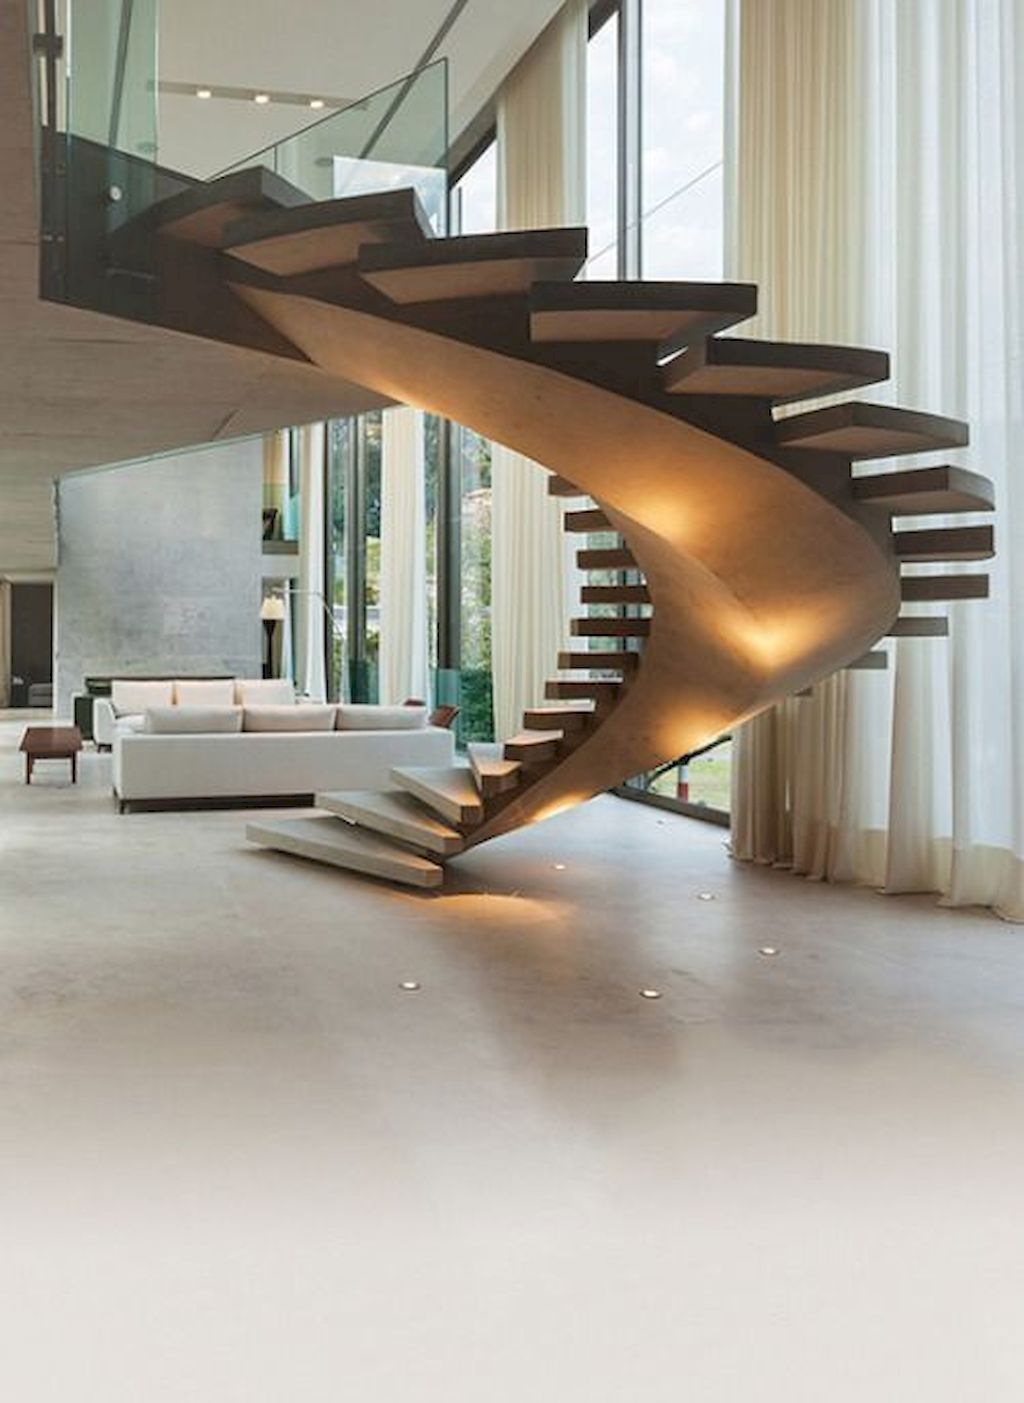 The Beautiful Staircase Decor Of The House Becomes